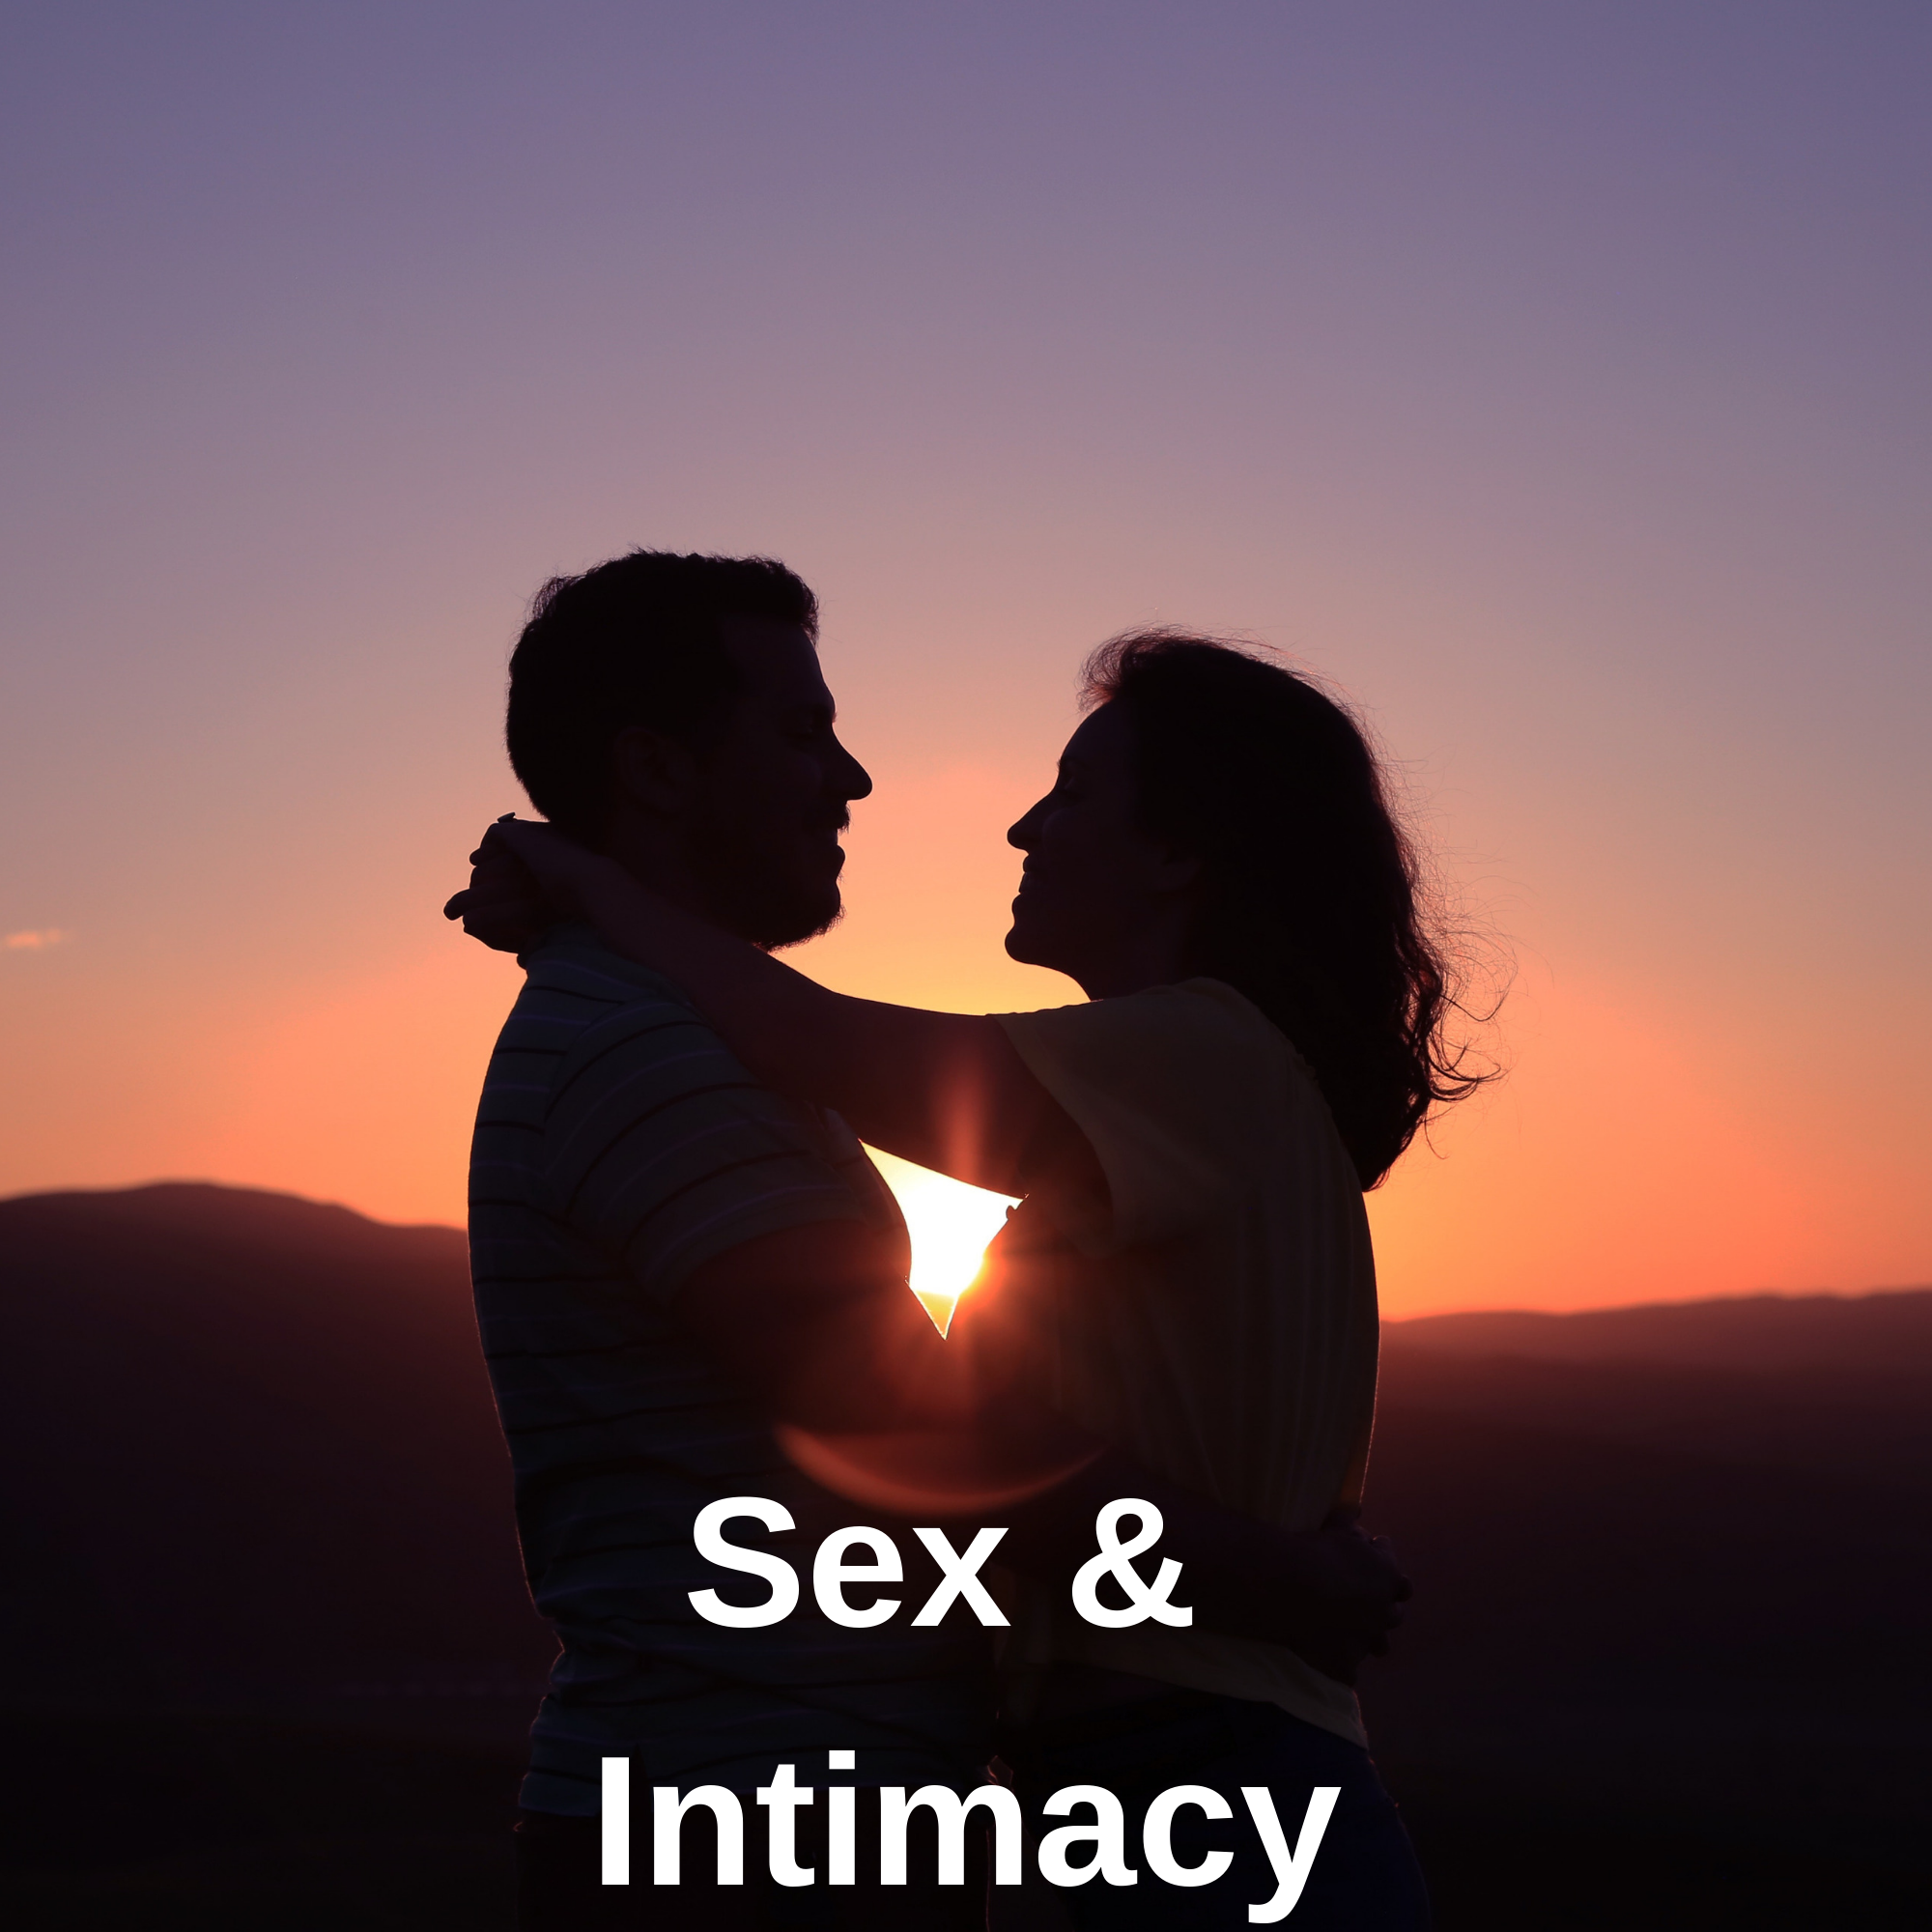 Sex & Intimacy